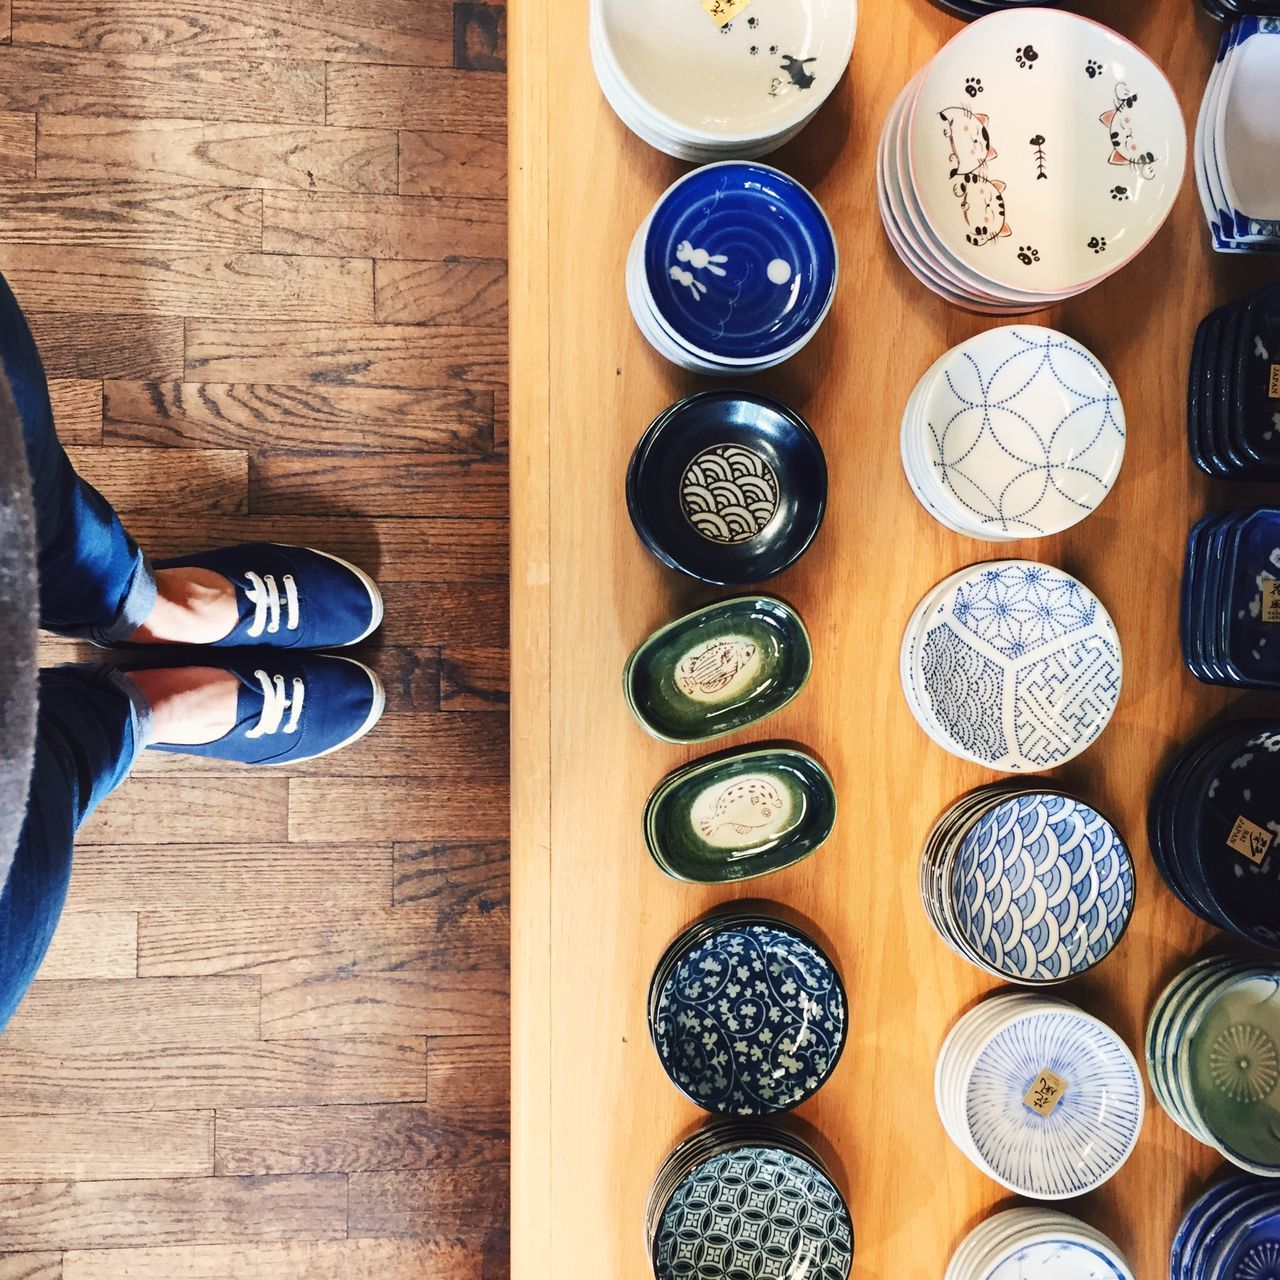 Woman standing in front of a shelf with Japanese pottery, San Francisco, USA. Adult Adults Only Blue California Close-up Day Human Body Part Human Leg Indoors  IPhone IPhoneography Japanese Culture Japanese Style Lifestyles Low Section One Person People Pottery Real People San Francisco Square USA View From Above Women